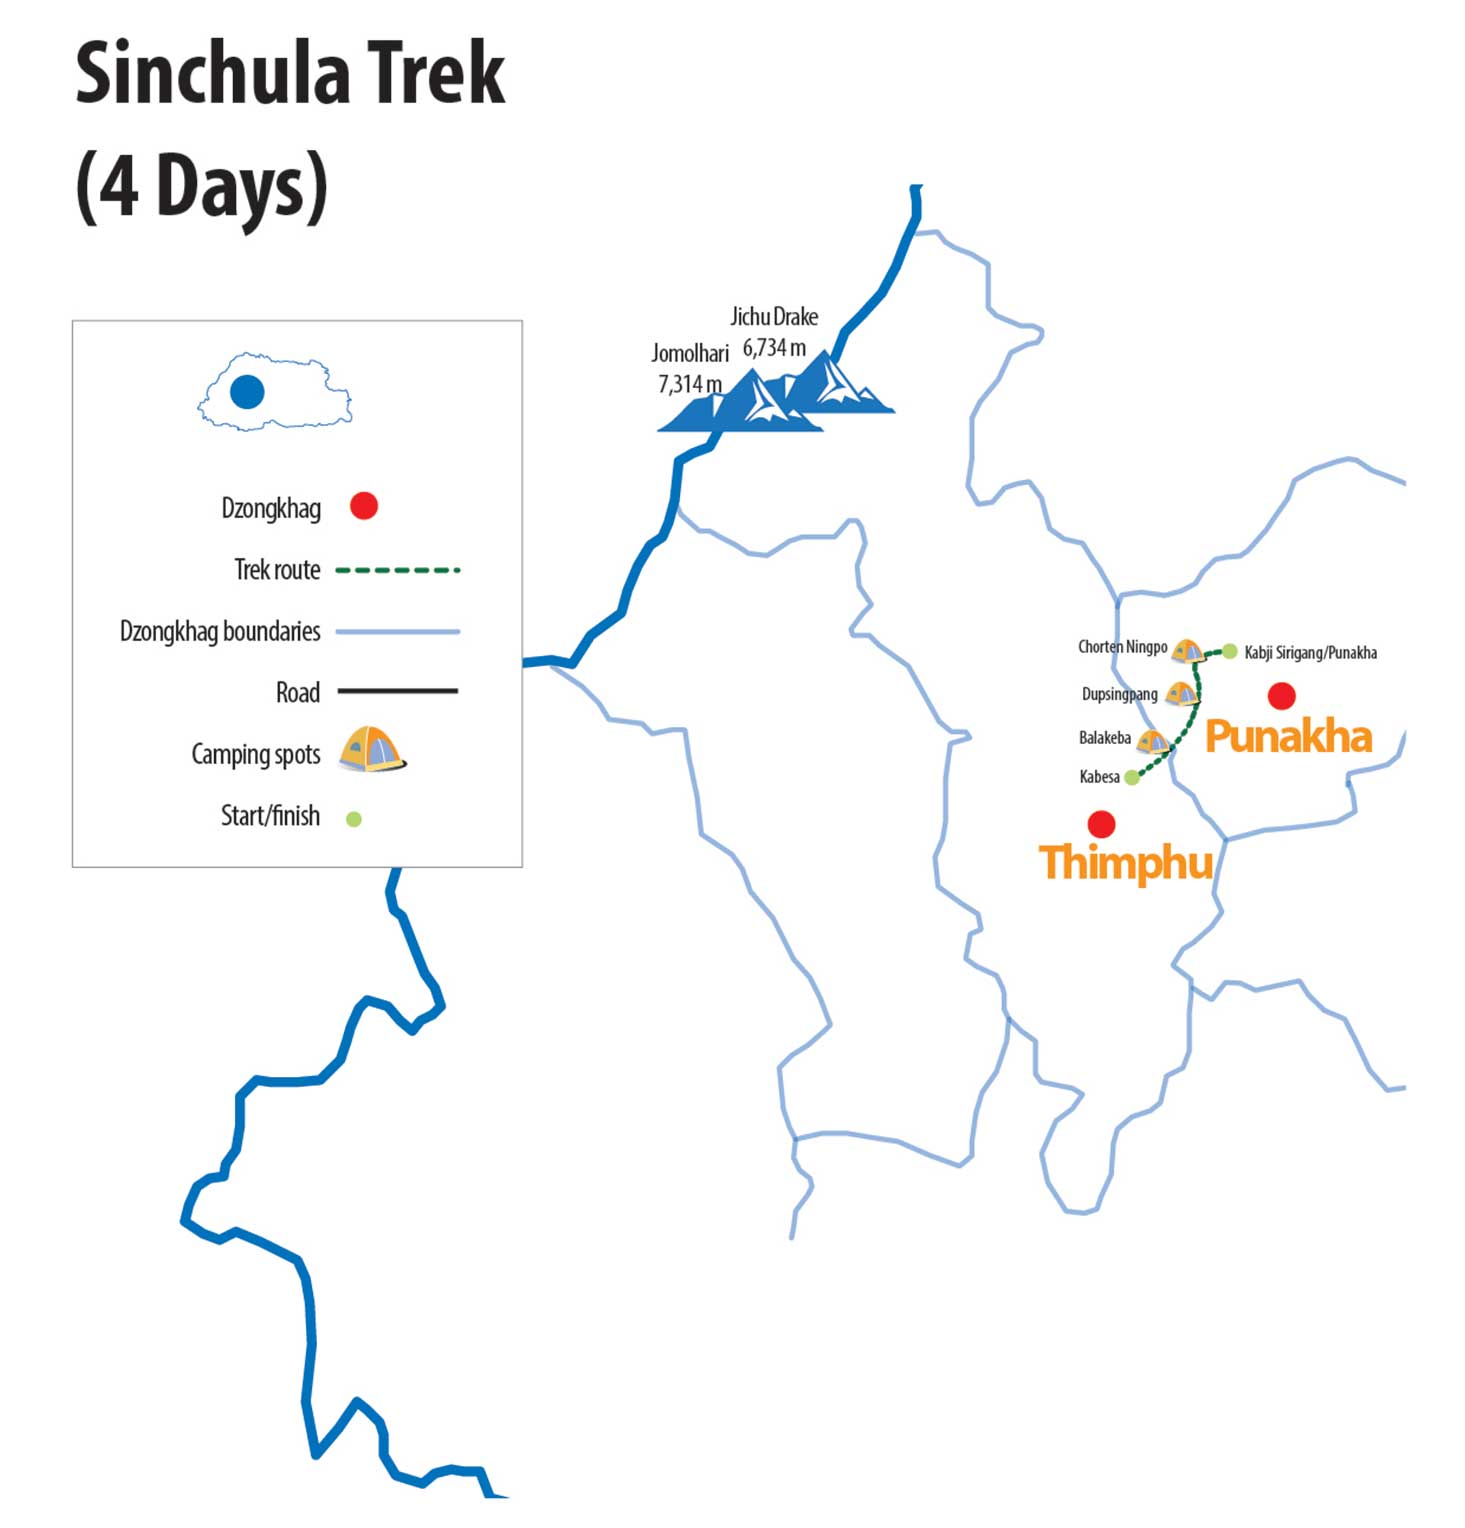 Sinchula Trek Route Map